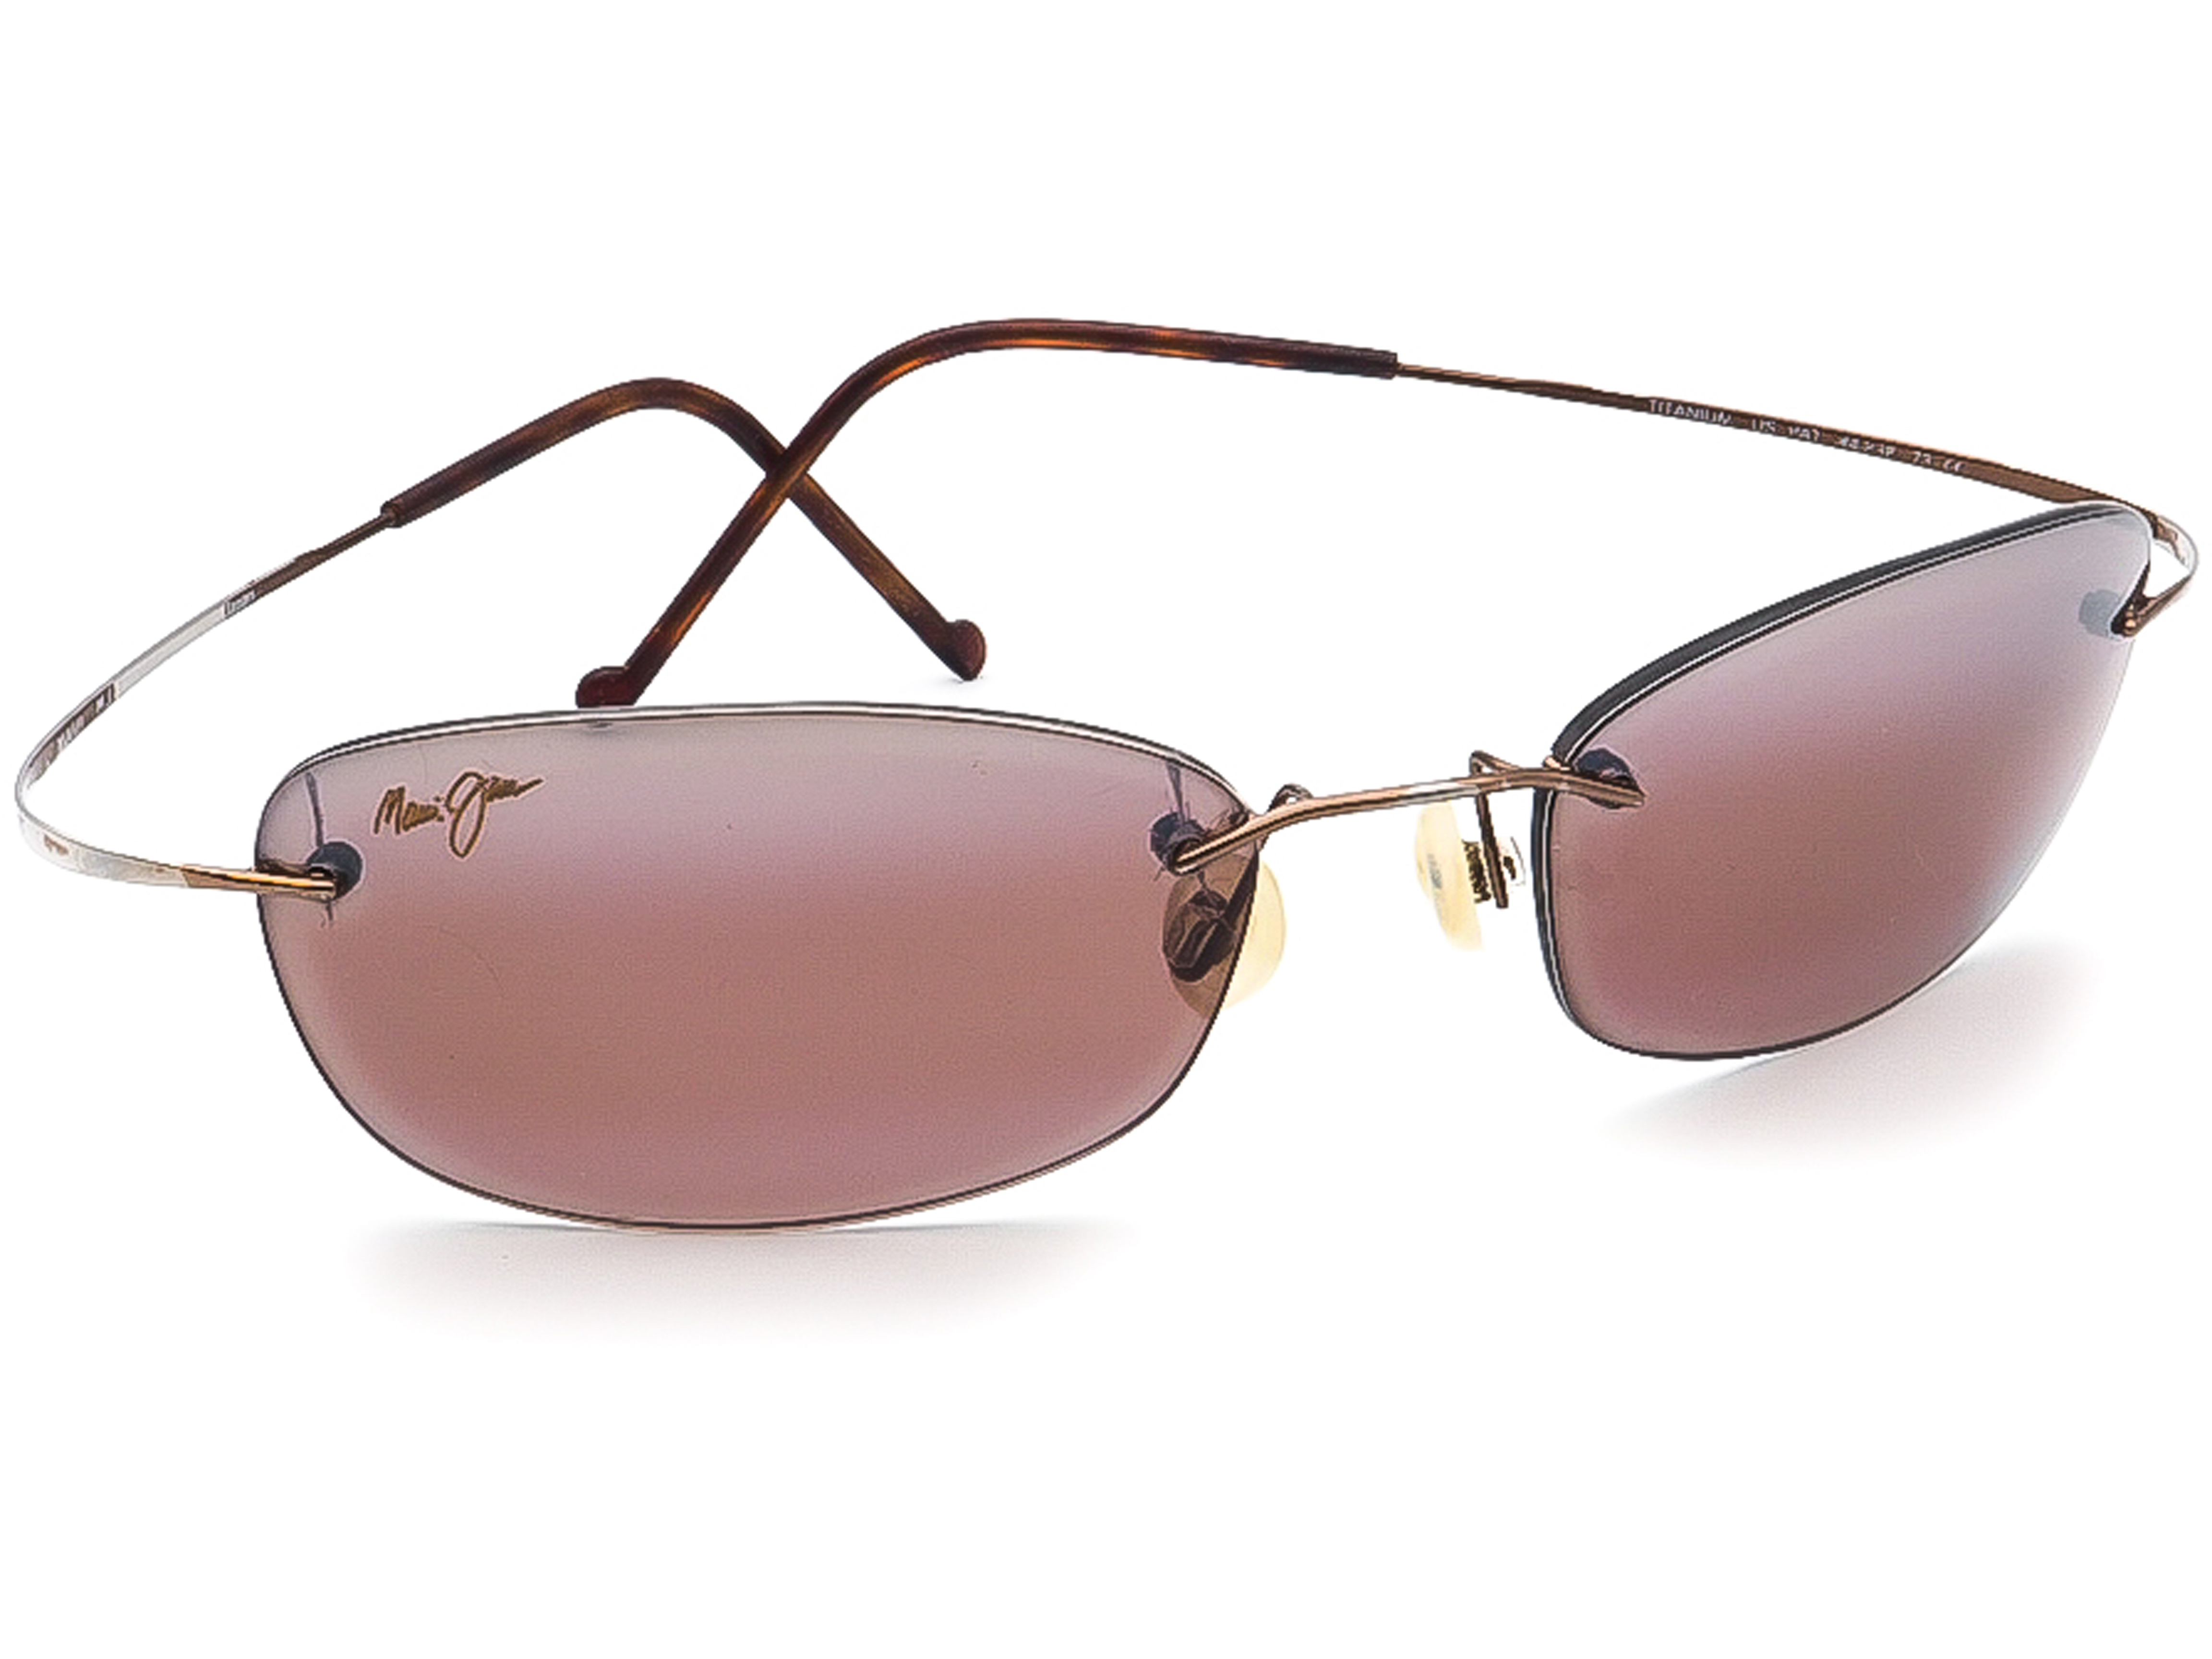 Maui Jim MJ 502-23 Sunglasses